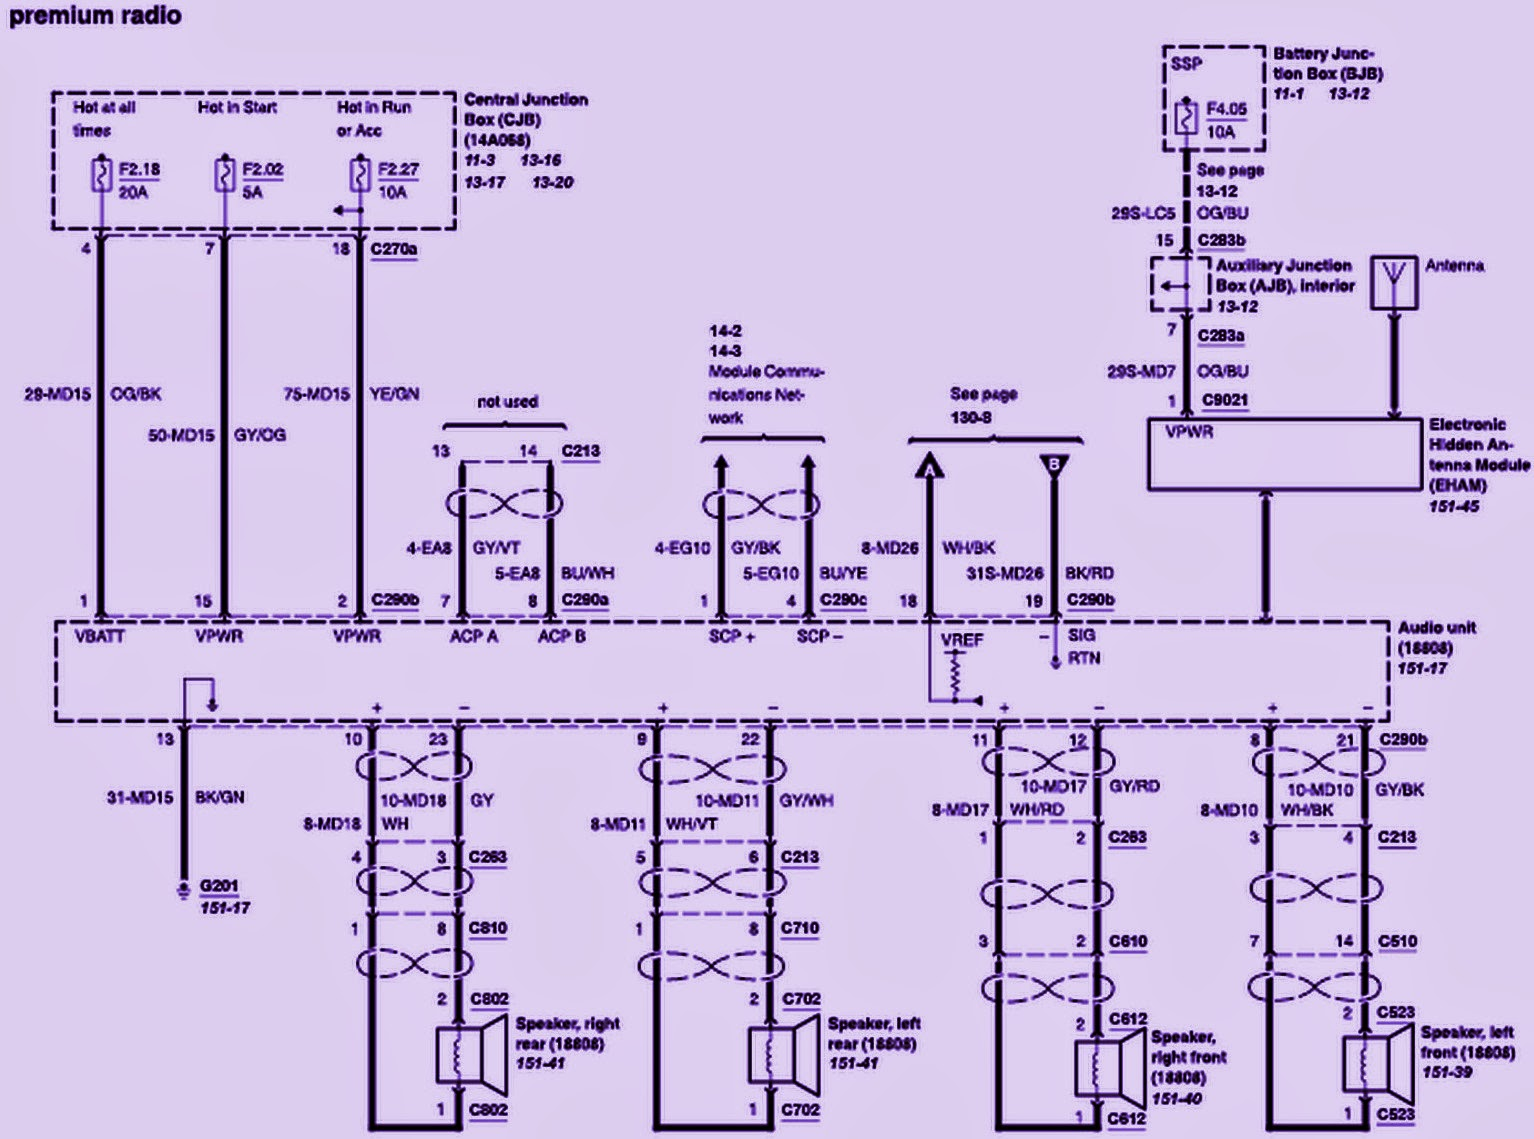 1999 Lincoln Continental Wiring Diagram | online wiring diagram on 1984 lincoln continental wiring diagram, 1966 lincoln continental wiring diagram, 1996 lincoln continental wiring diagram, 1965 lincoln continental convertible wiring diagram,